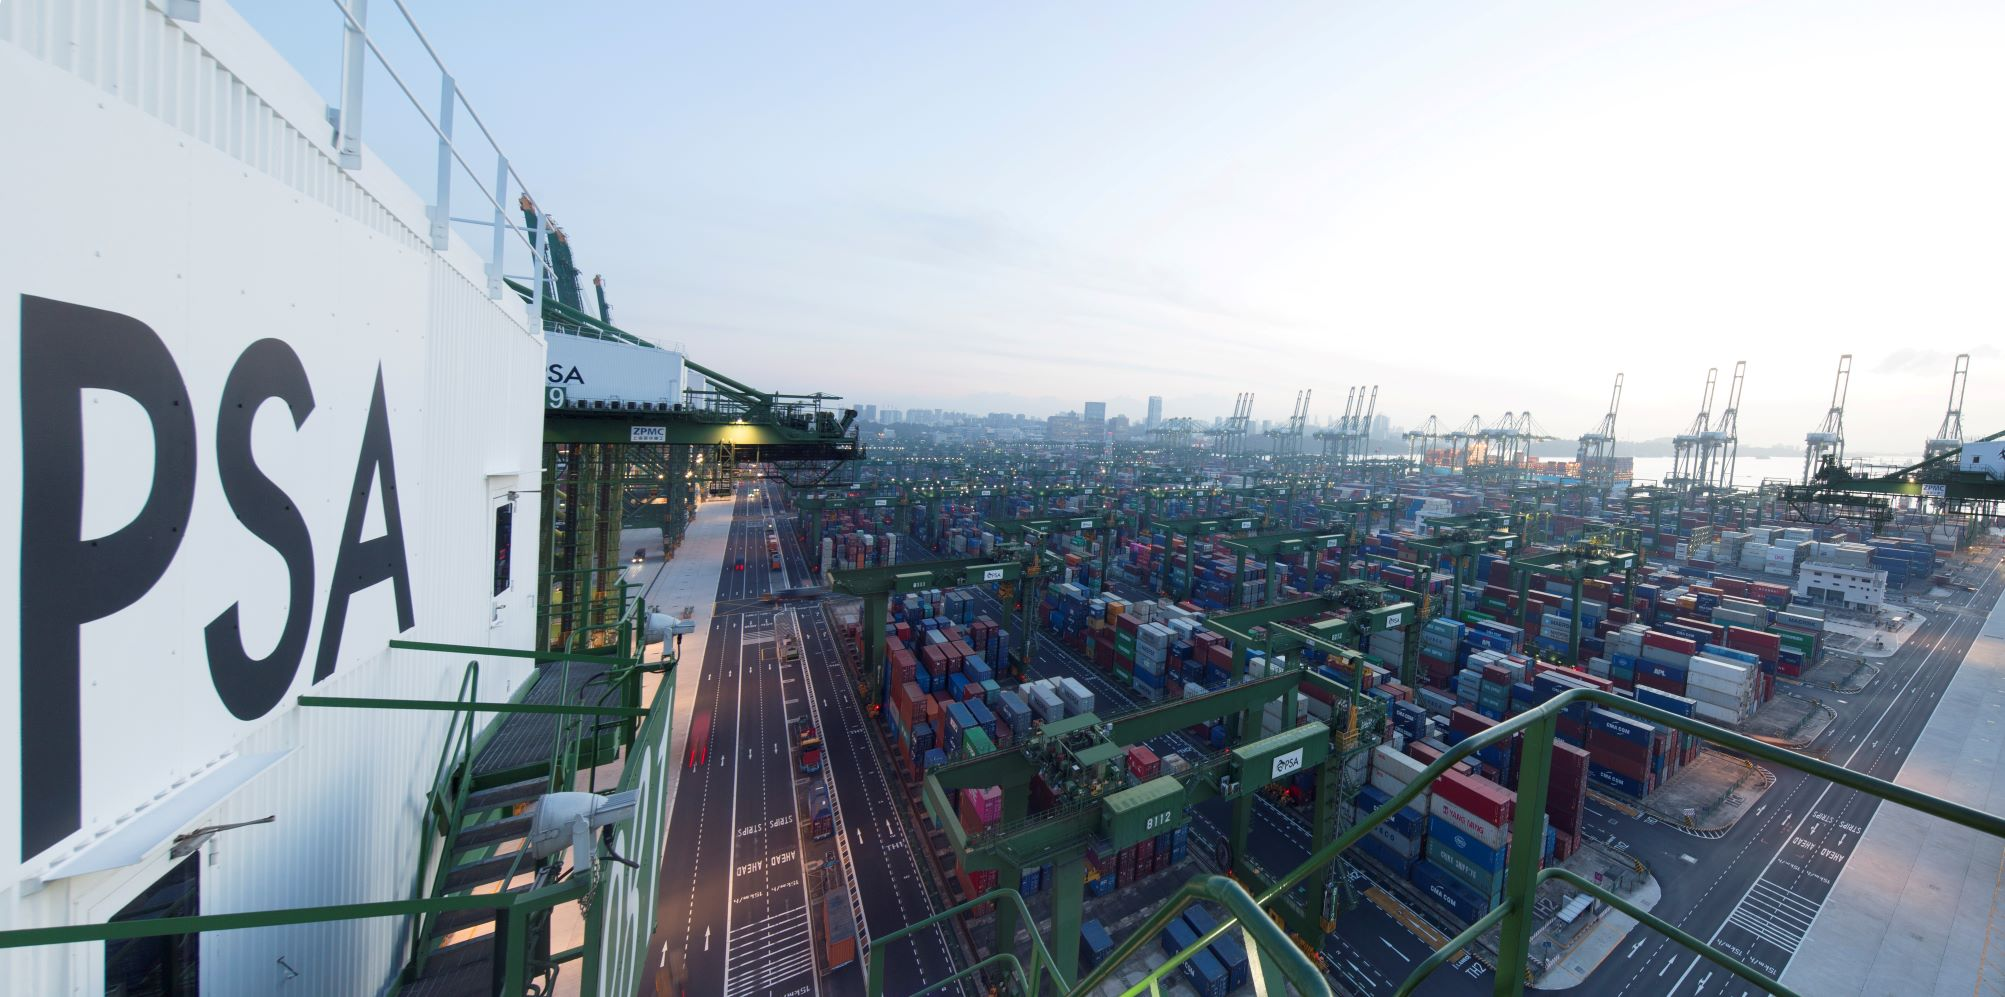 PSA & HMM join forces in Singapore for container terminal operations 1